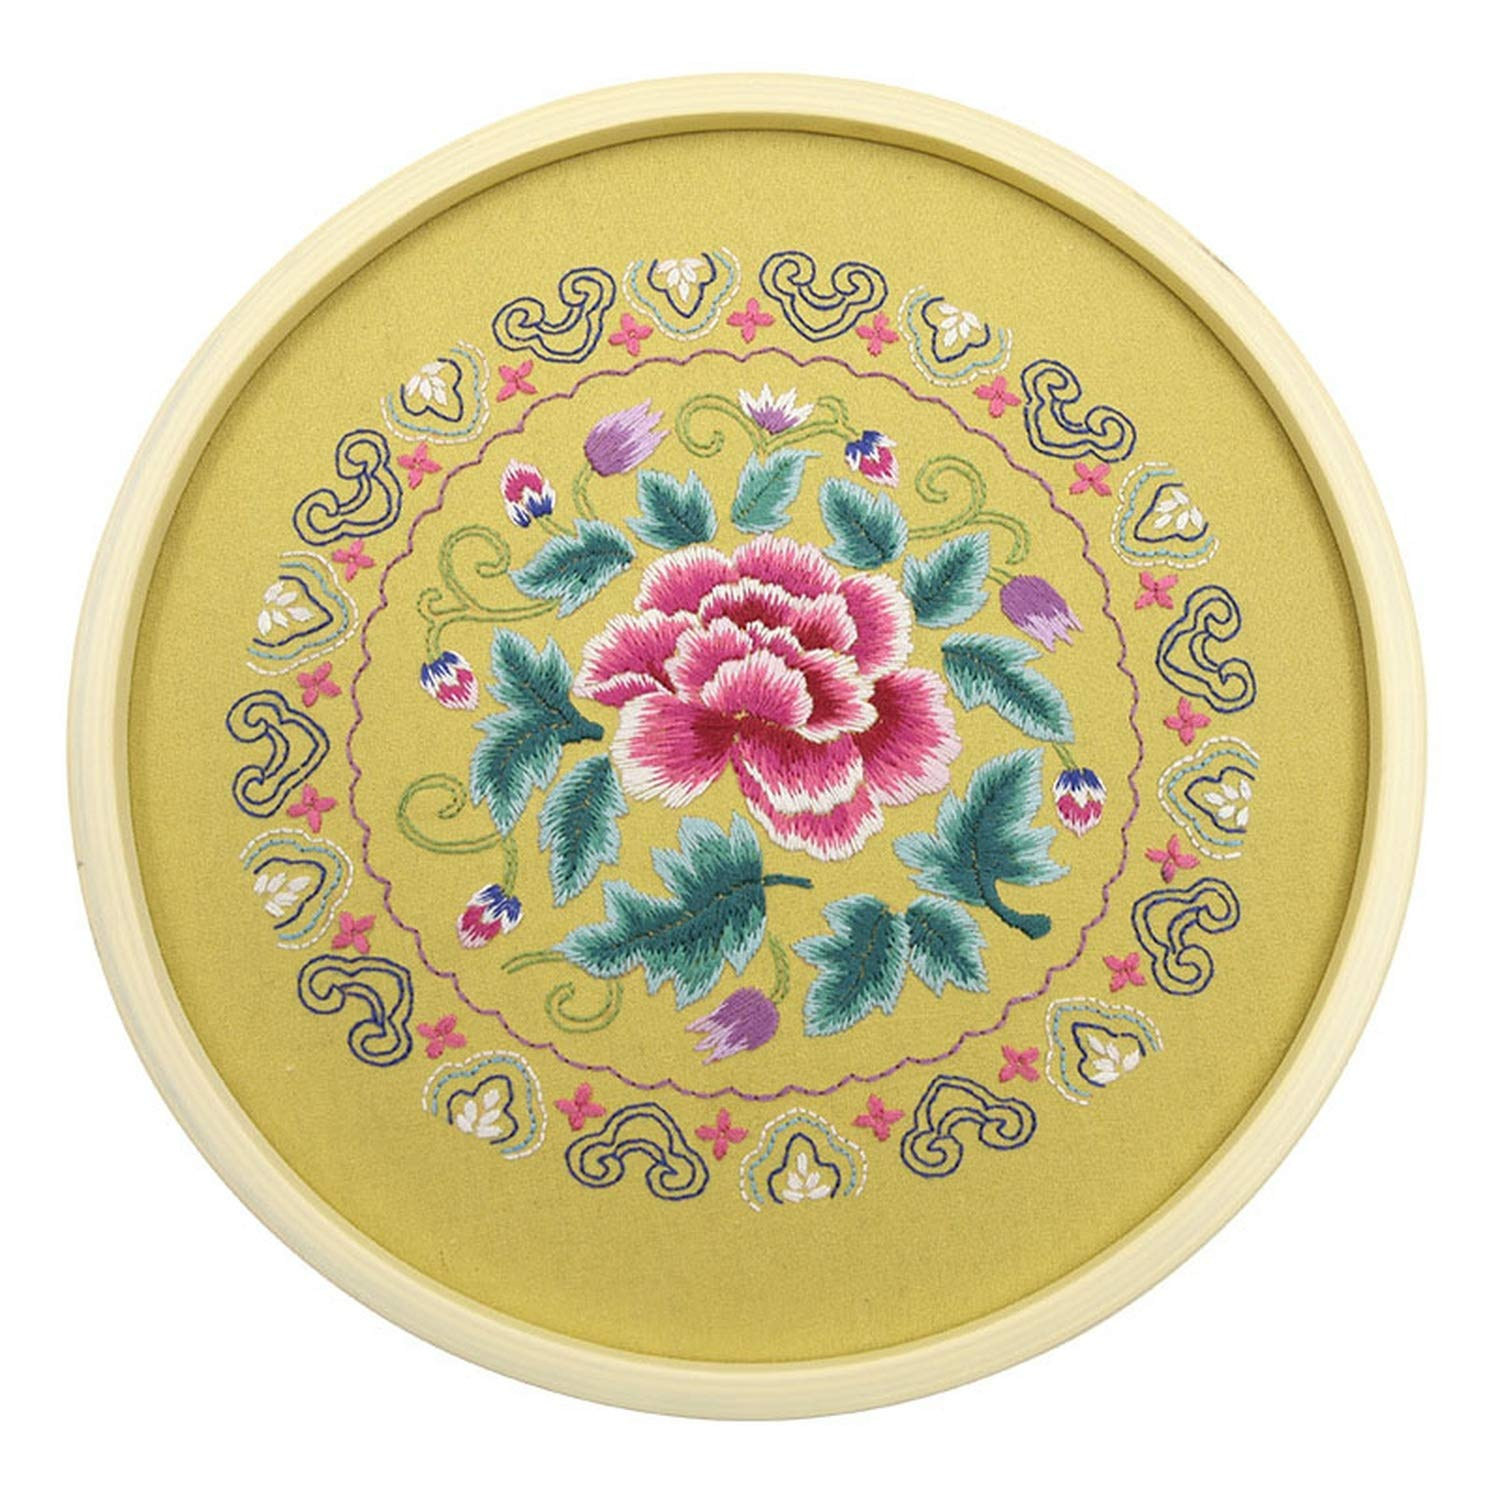 Chinese DIY Flowers Embroidery Kits with 30cm Bamboo Hoop Needlework Cross Stitch Set Handmade Art Craft Sewing Wall Painting,3,30CM Bamboo Hoop kit by koweis